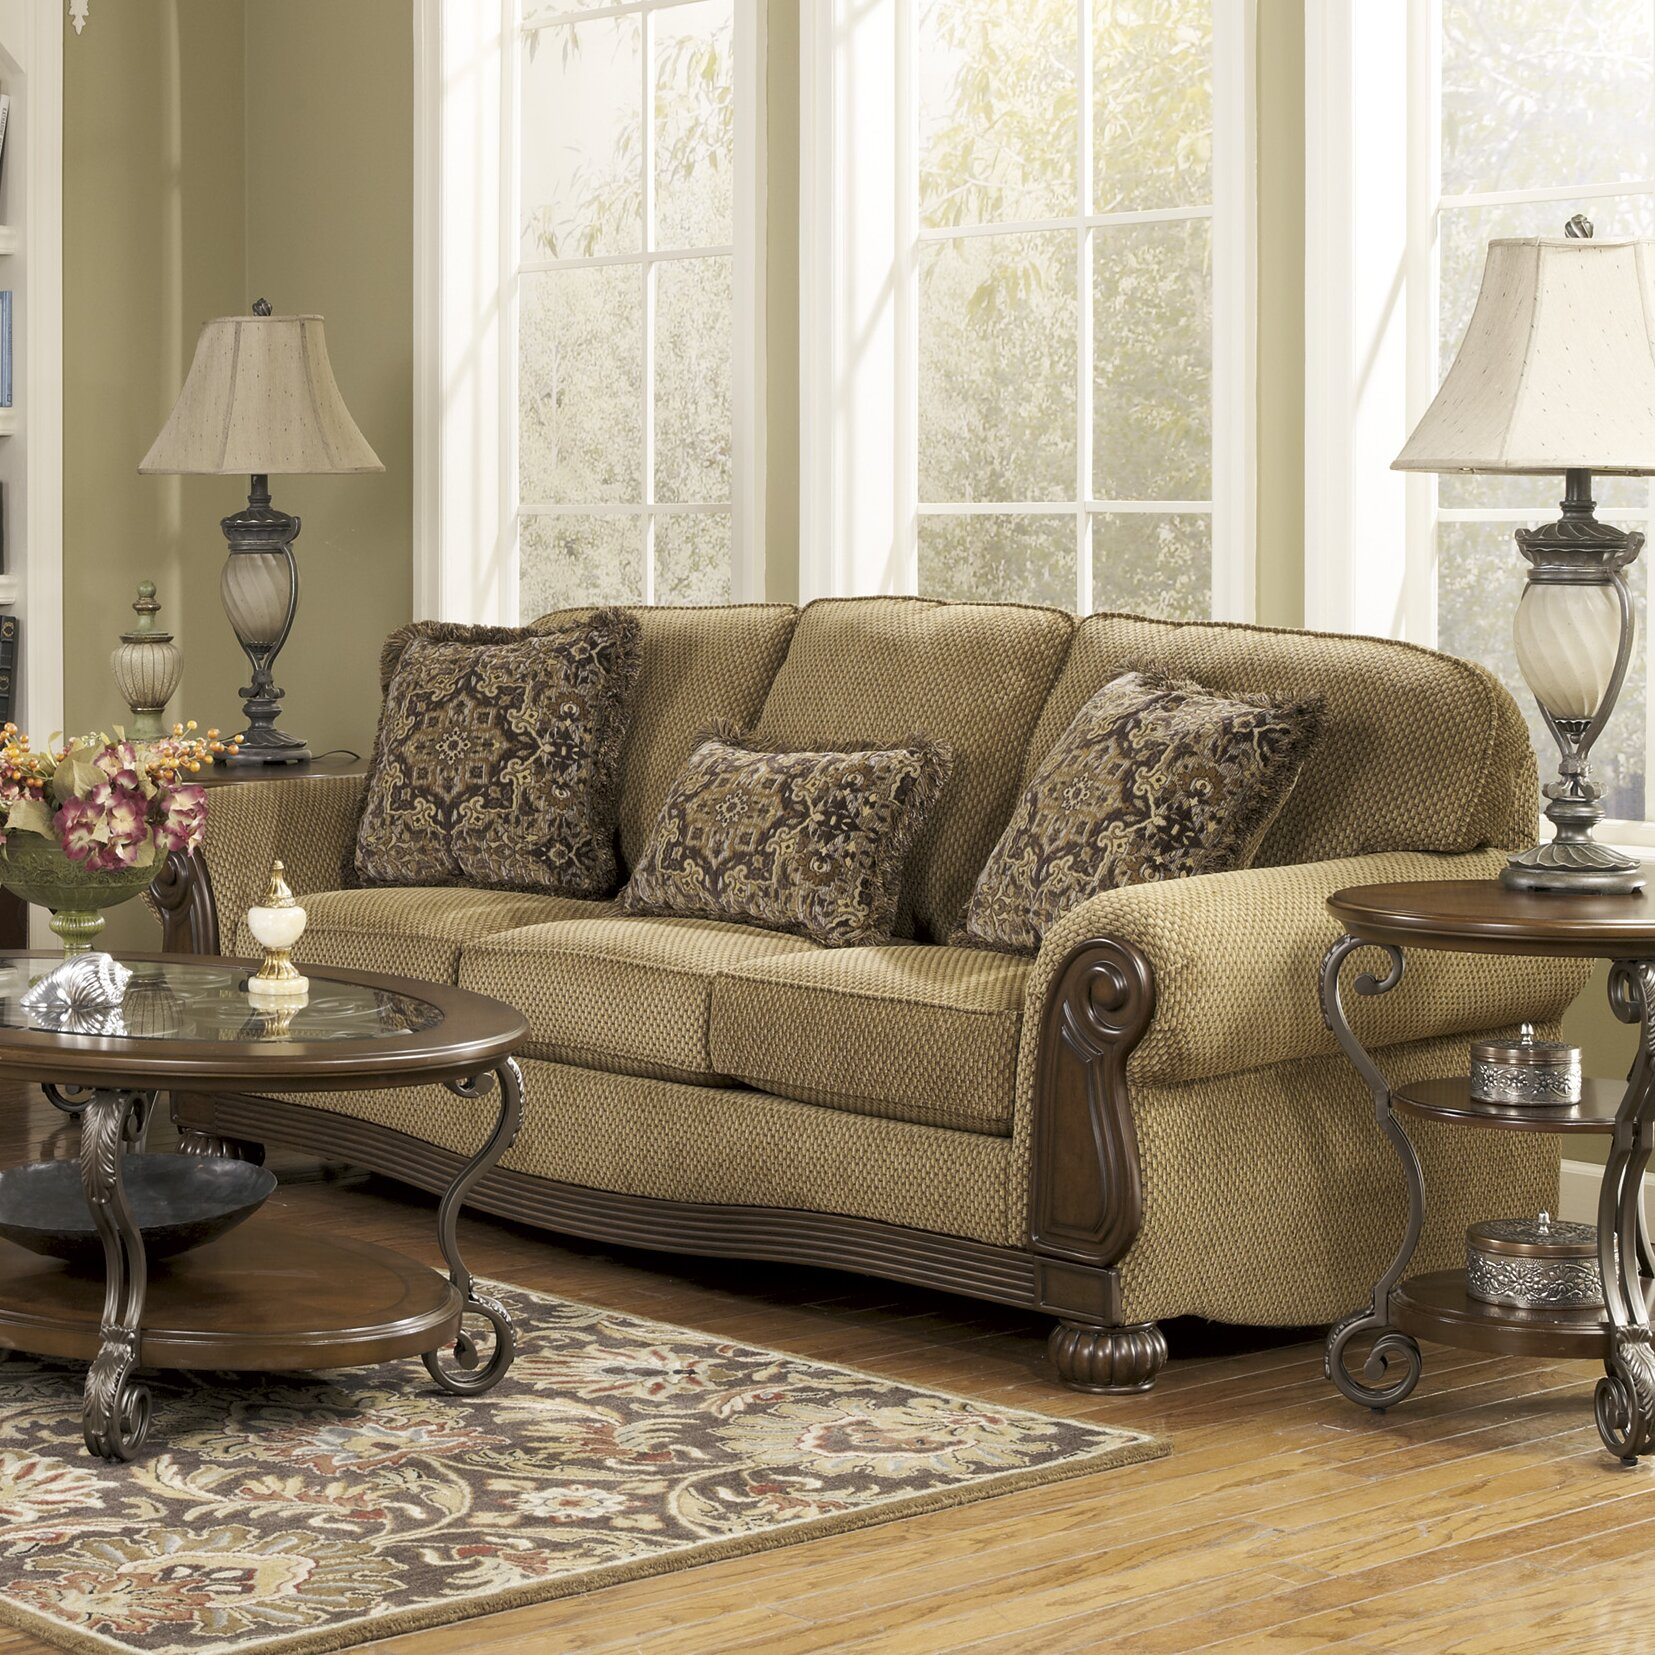 Signature Design By Ashley Taylor Sofa Amp Reviews Wayfair